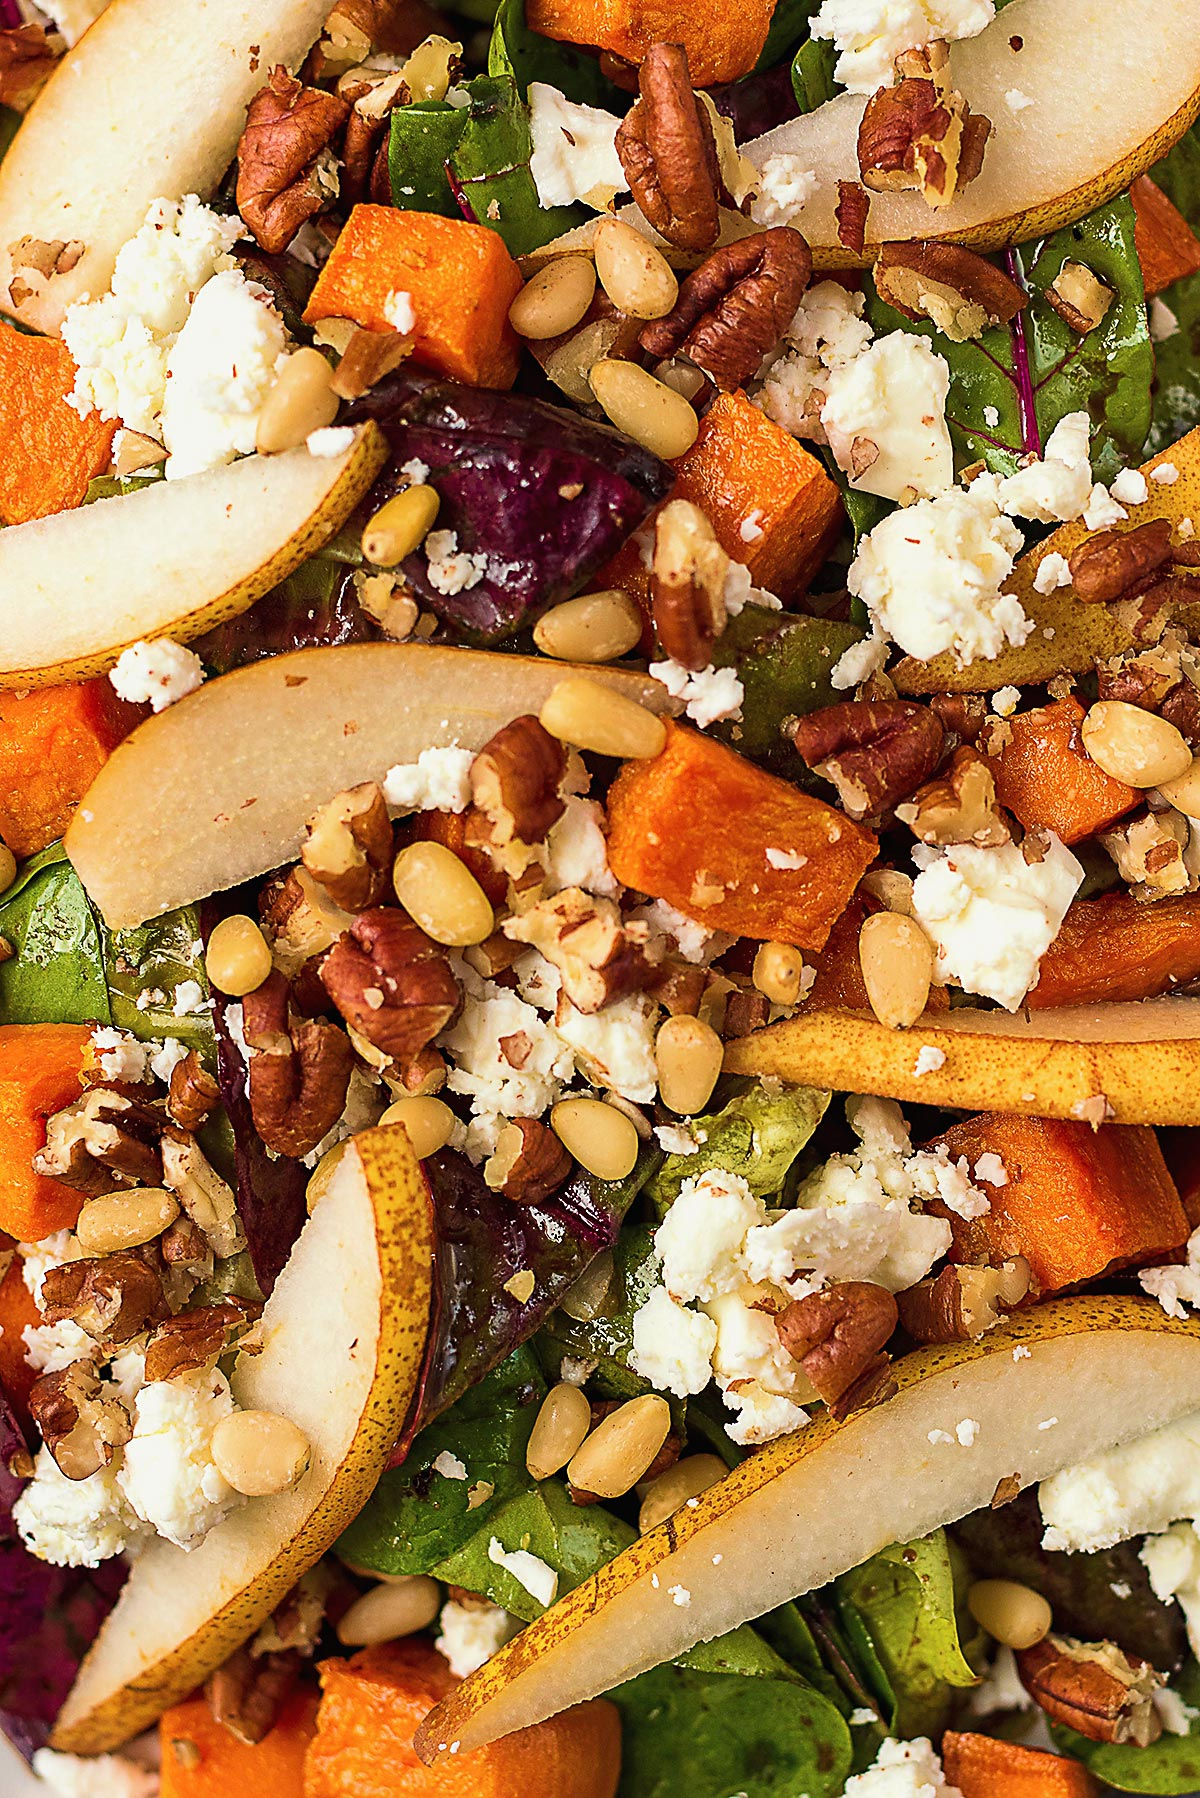 Salad leaves mixed with pear slices, sweet potato cubes and pine nuts